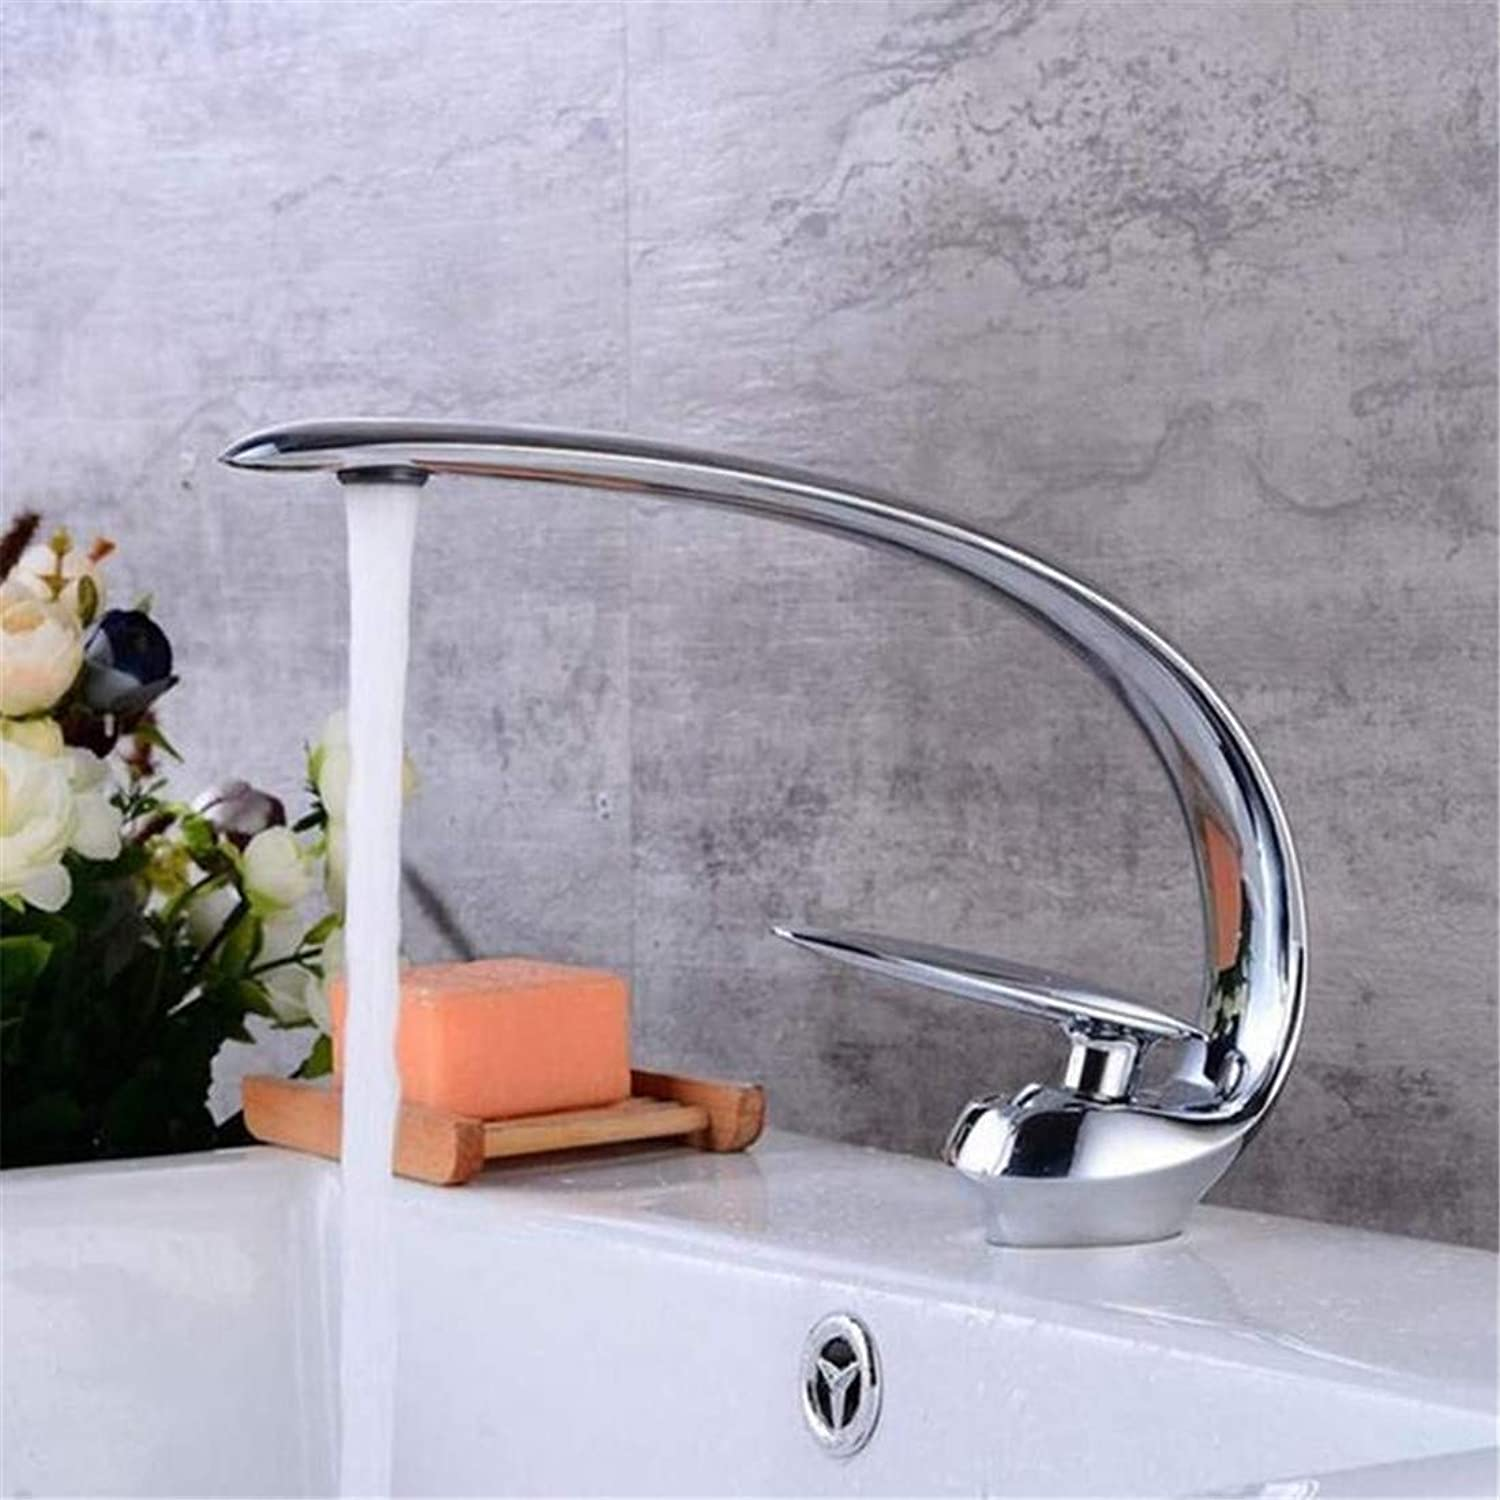 Faucet Modern Luxury Full Copper 360° redating Faucetbathroom Faucets Style All-Copper Chrome Ancient Taps Hot and Cold Washbasin